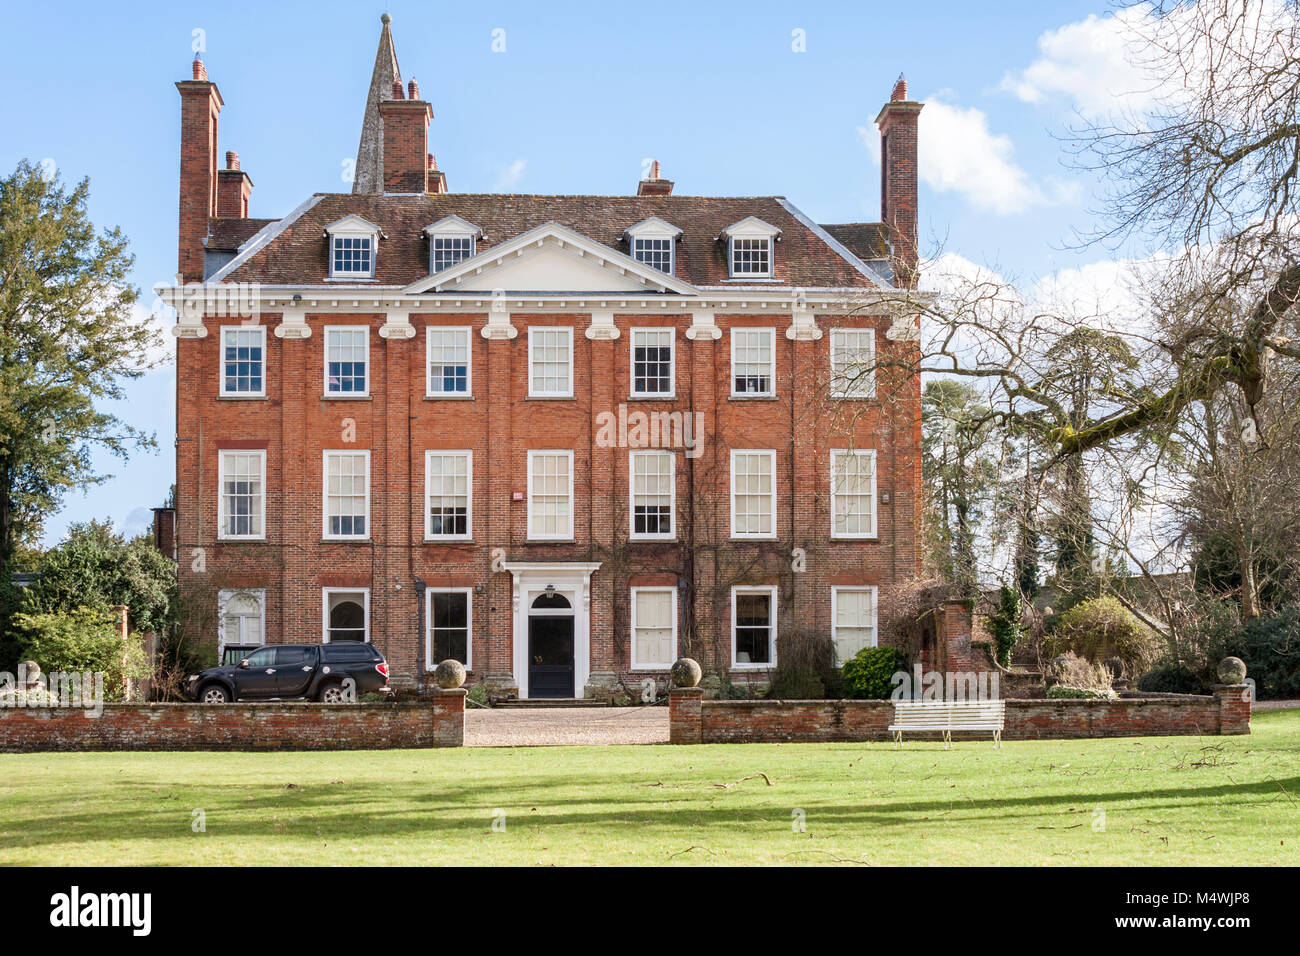 Welford Park country house, well known as the location for The Great British Bake Off TV show - Stock Image